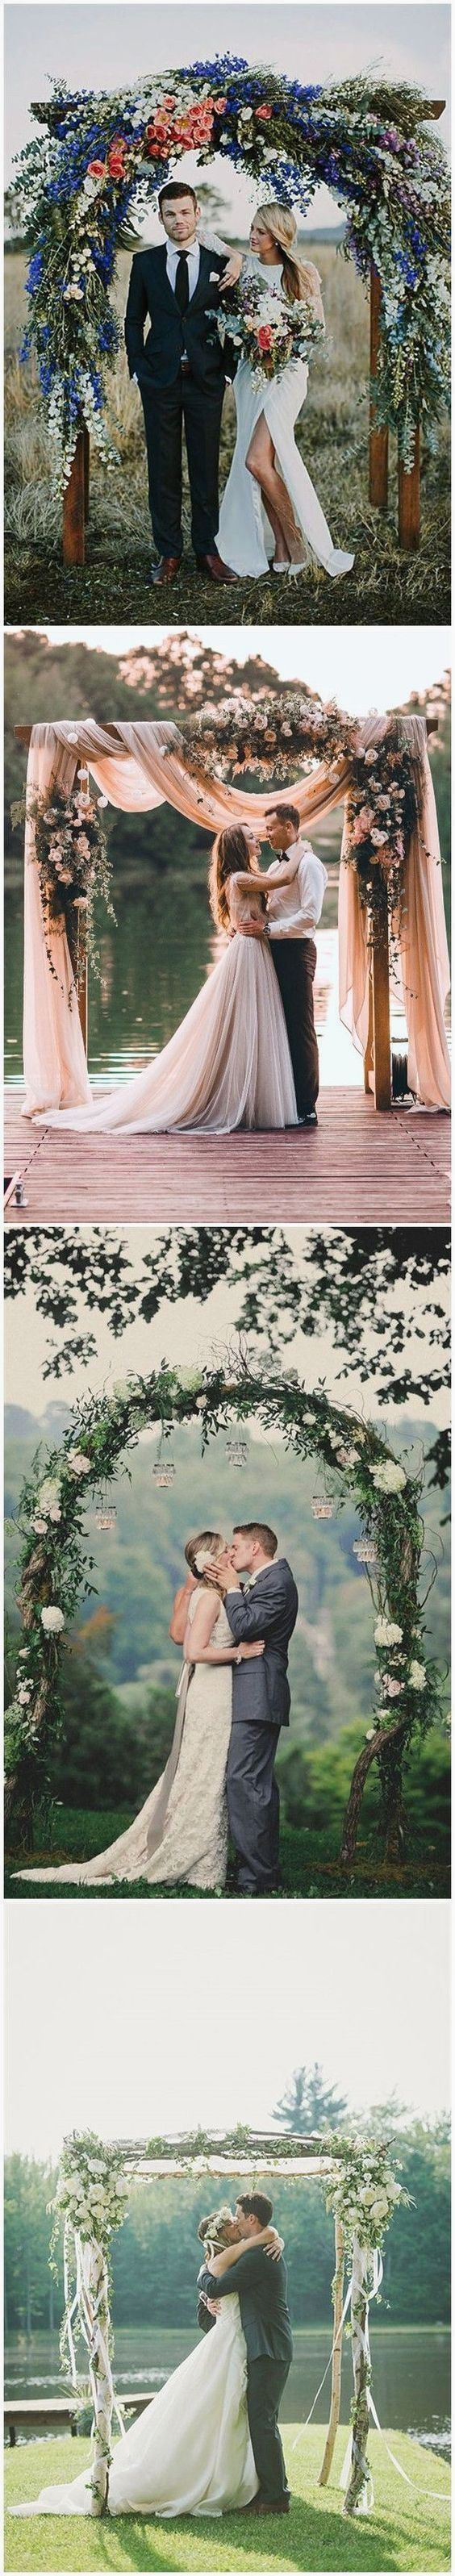 Wedding ceremony Choosing the location for your wedding ceremony is